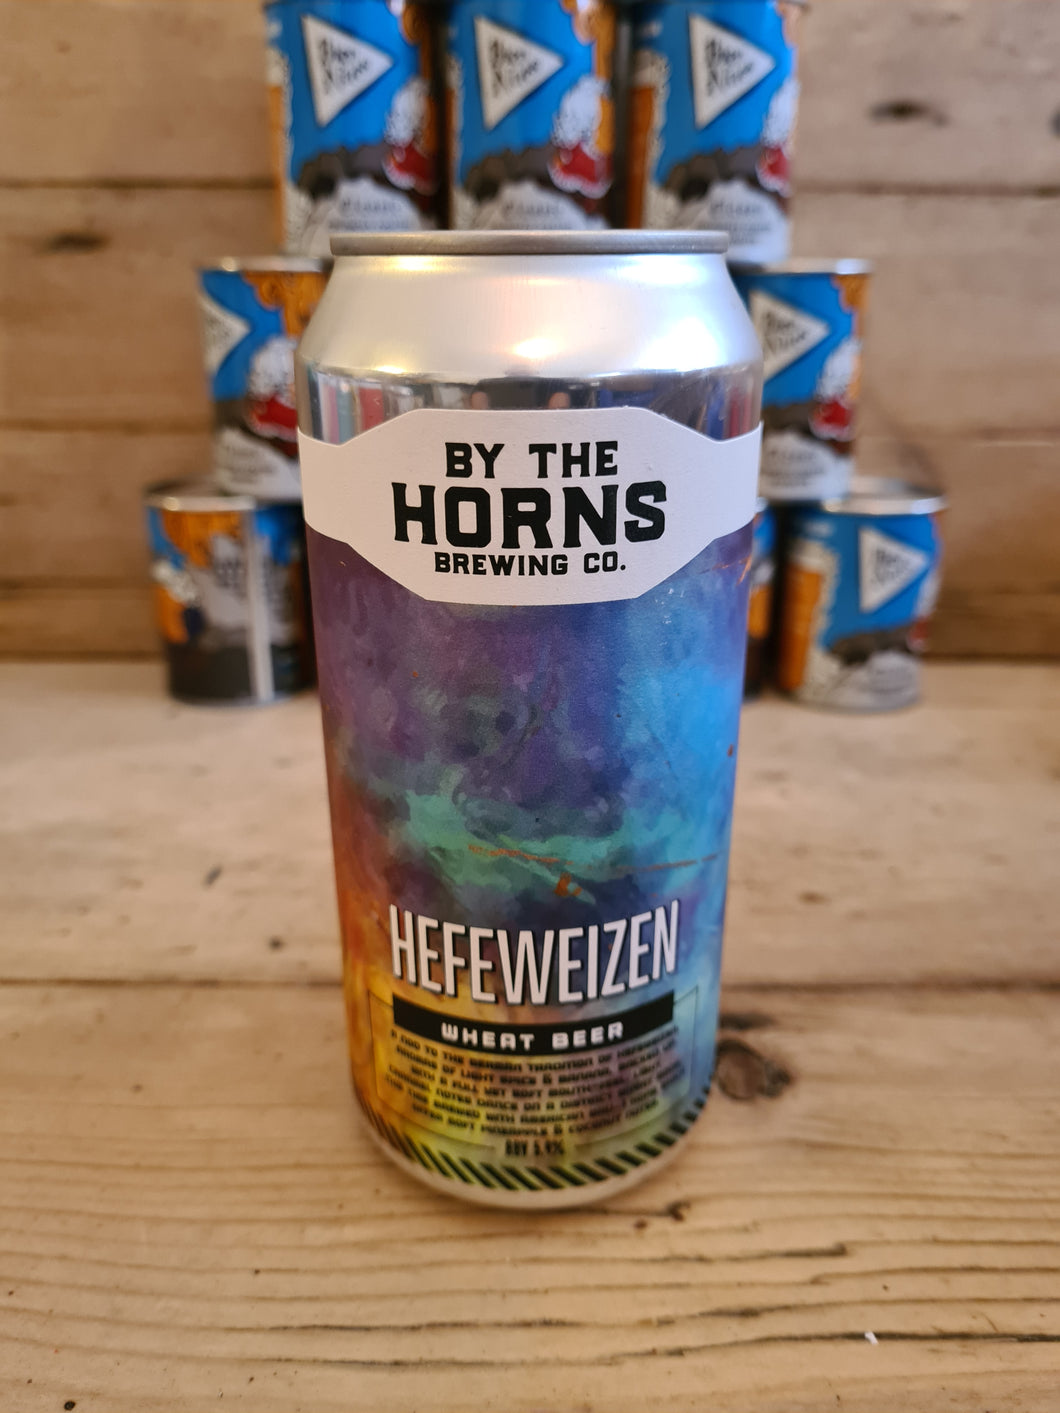 By The Horns - Hefeweizen - 5.9% ABV (440ml)